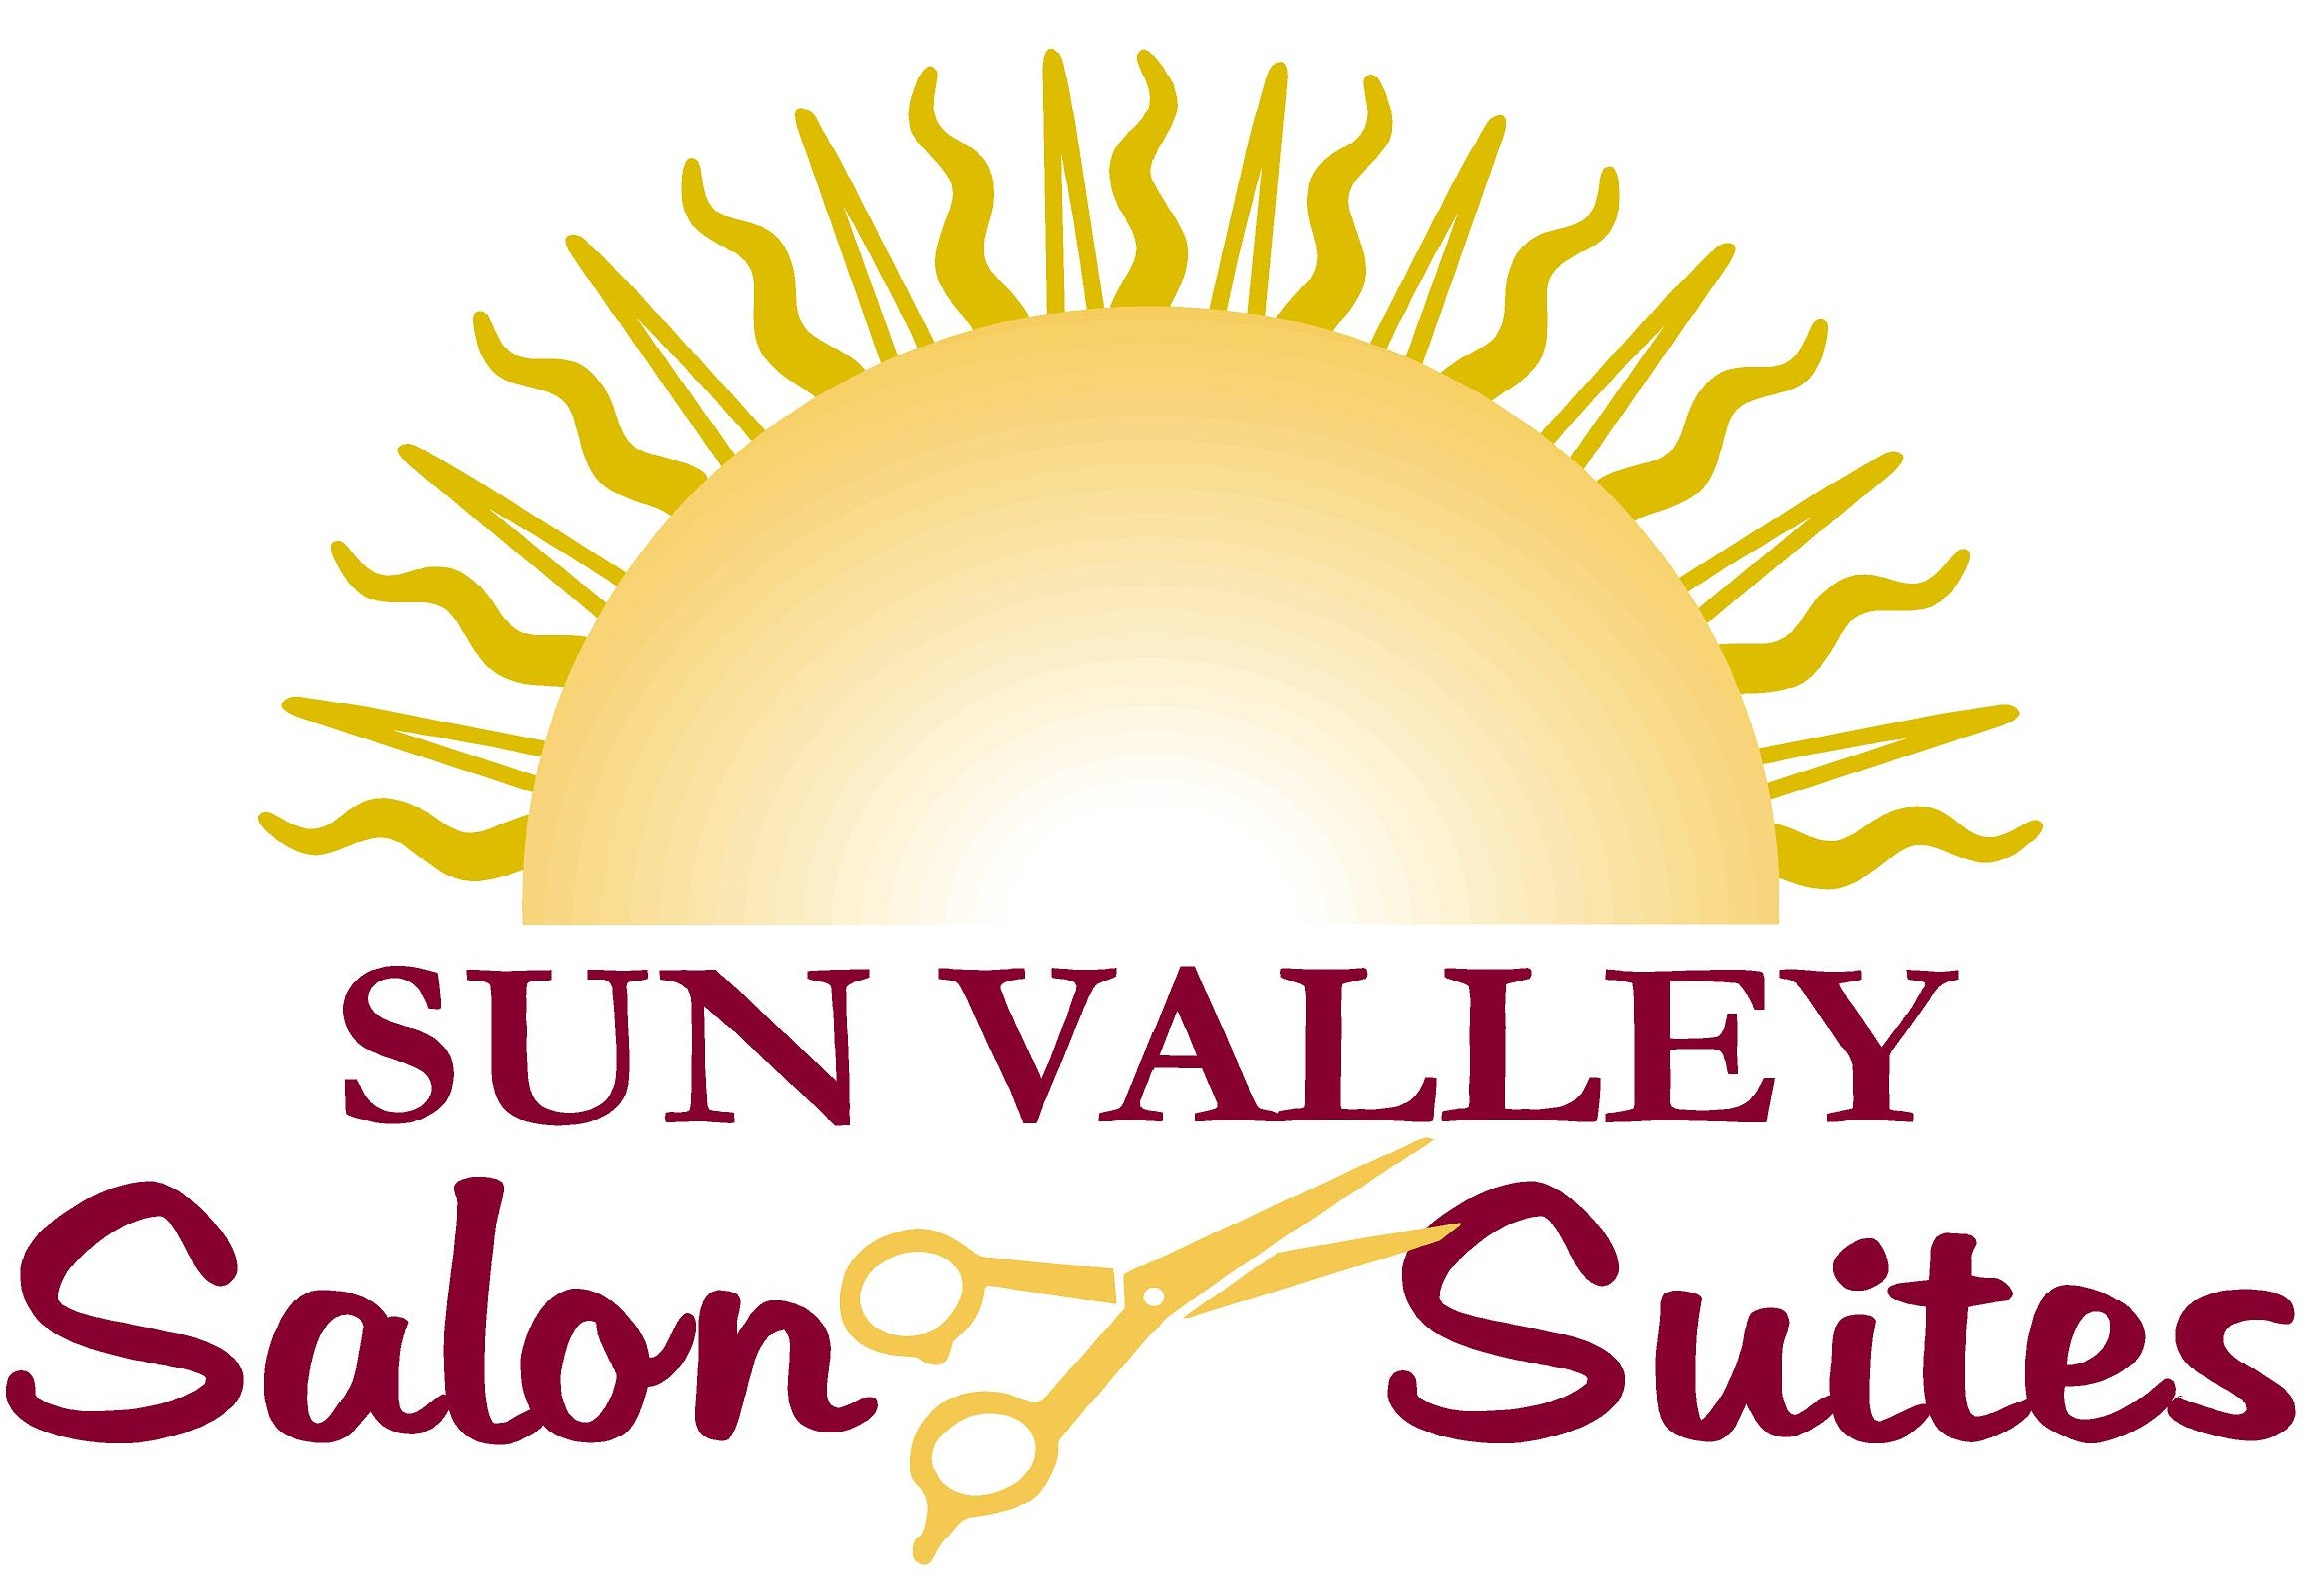 Sun Valley Salon Suites